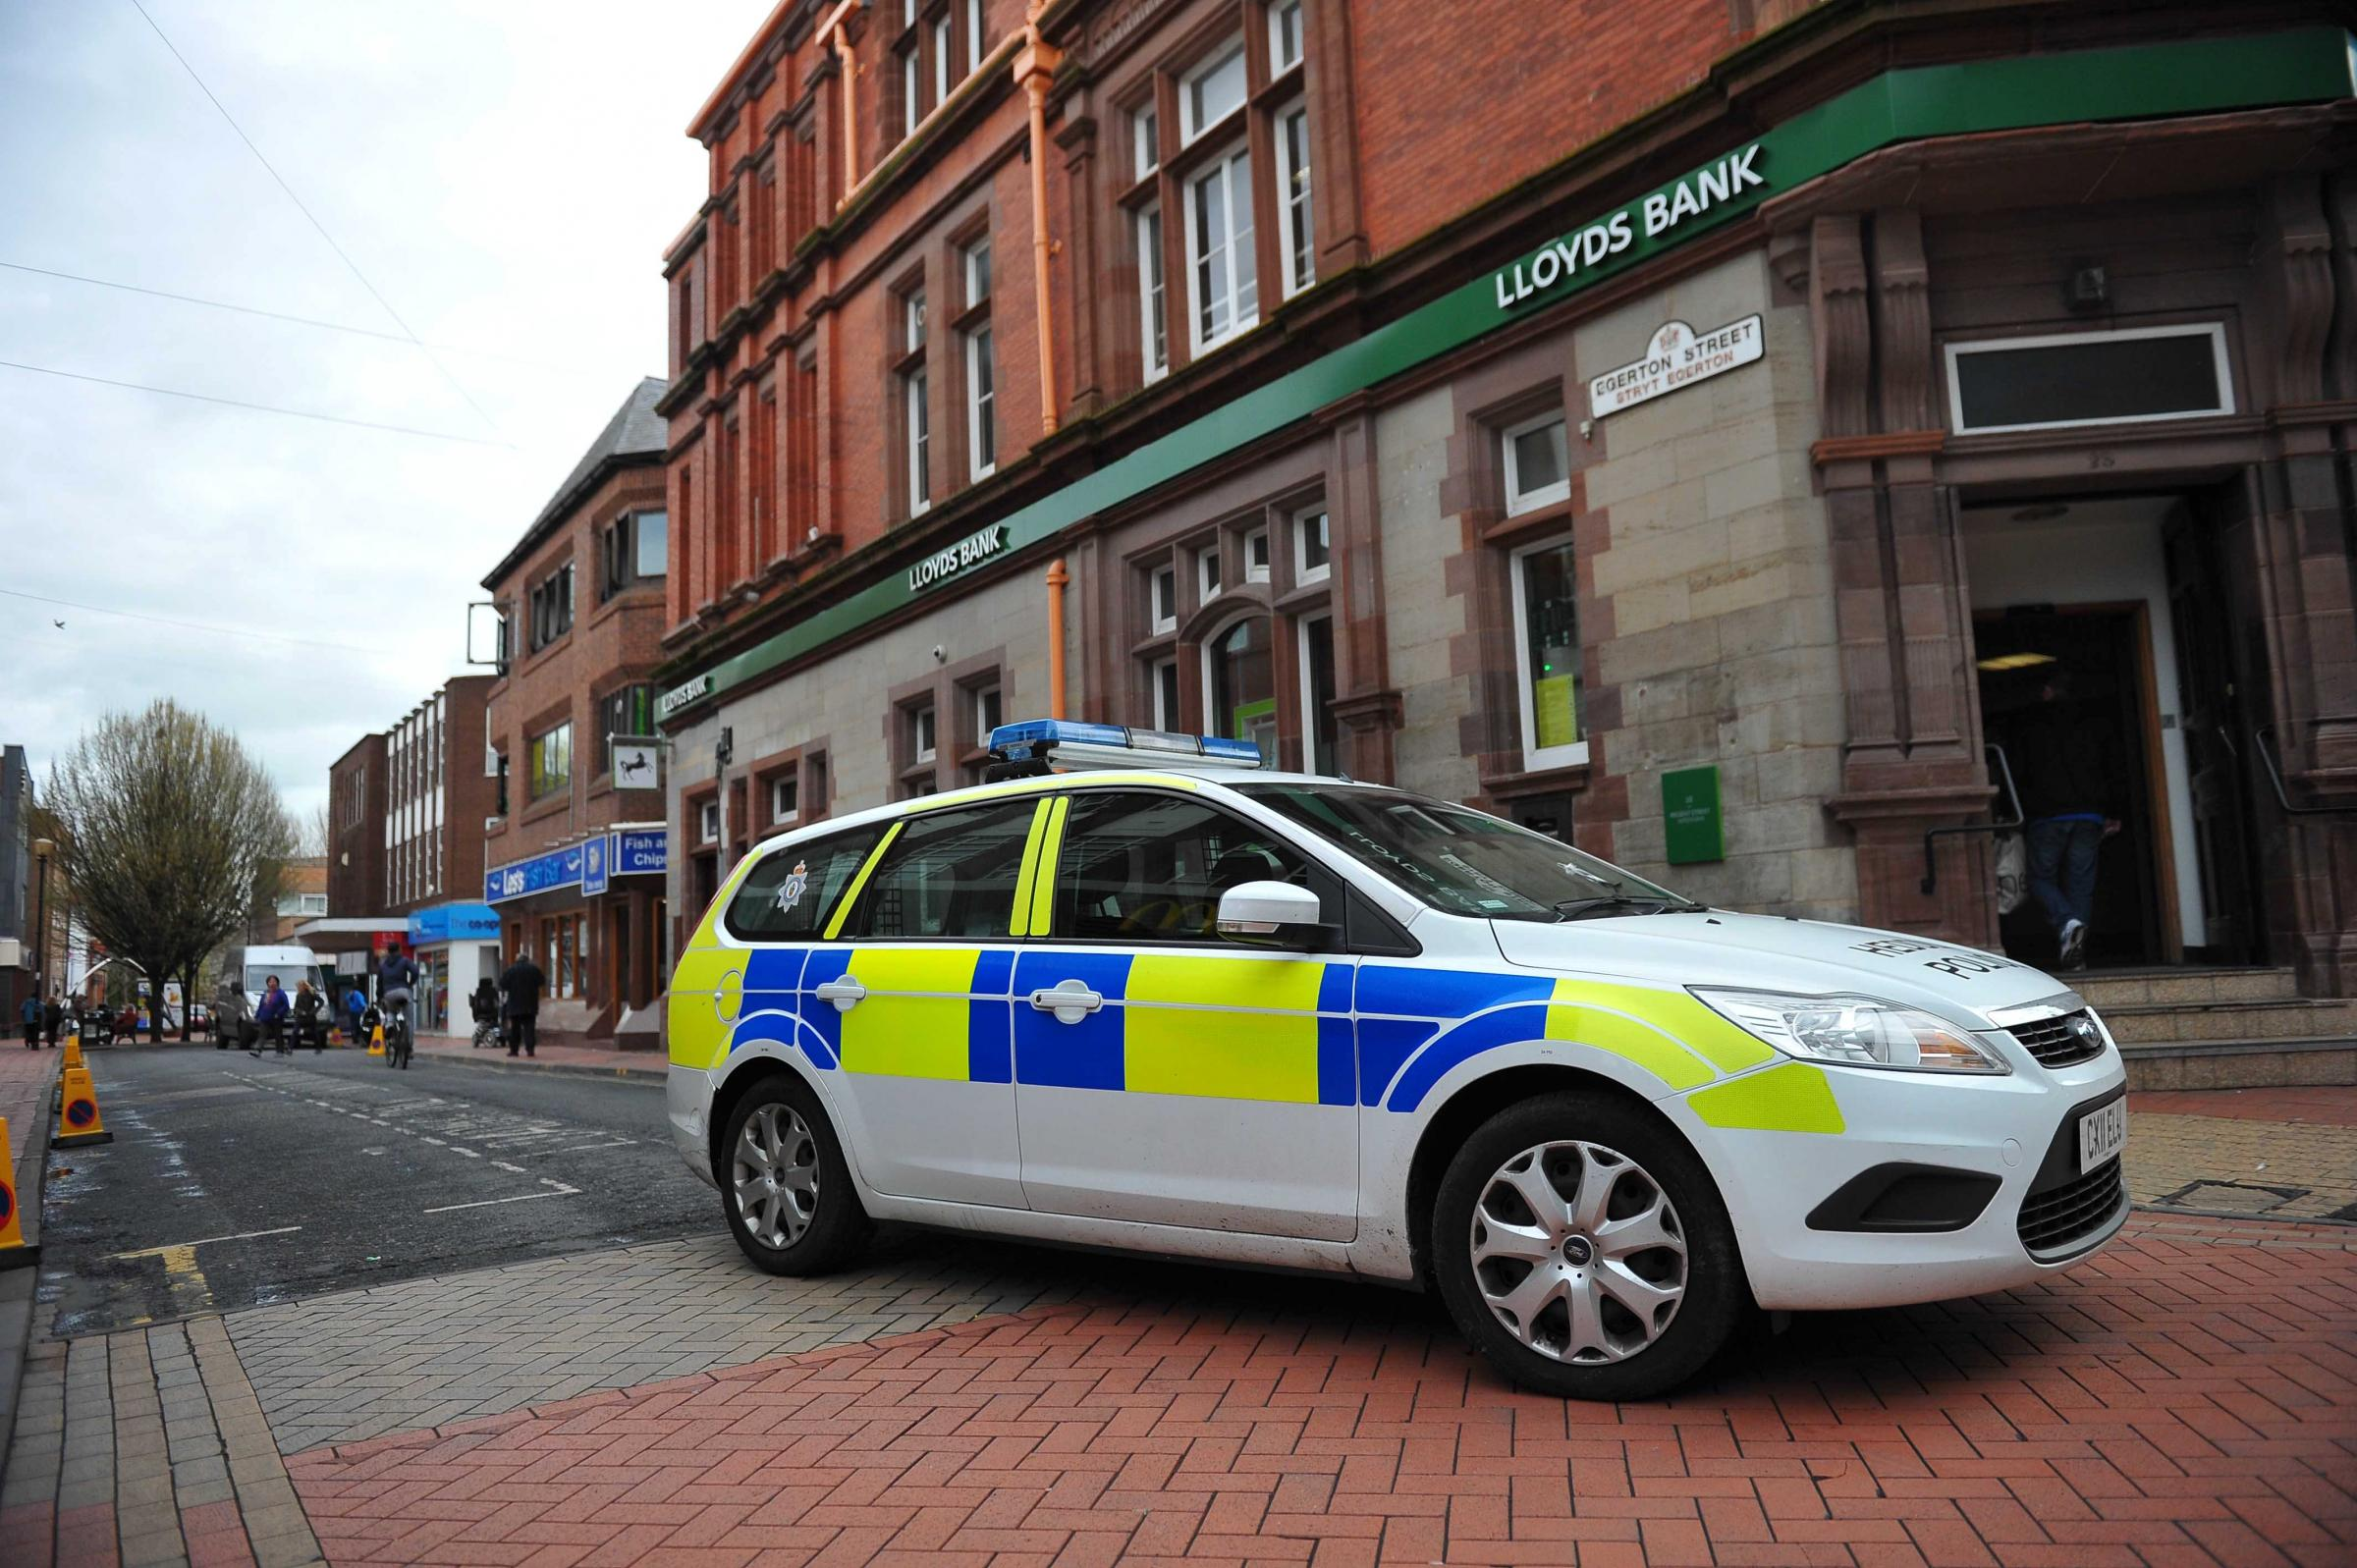 Library image of police in Wrexham town centre